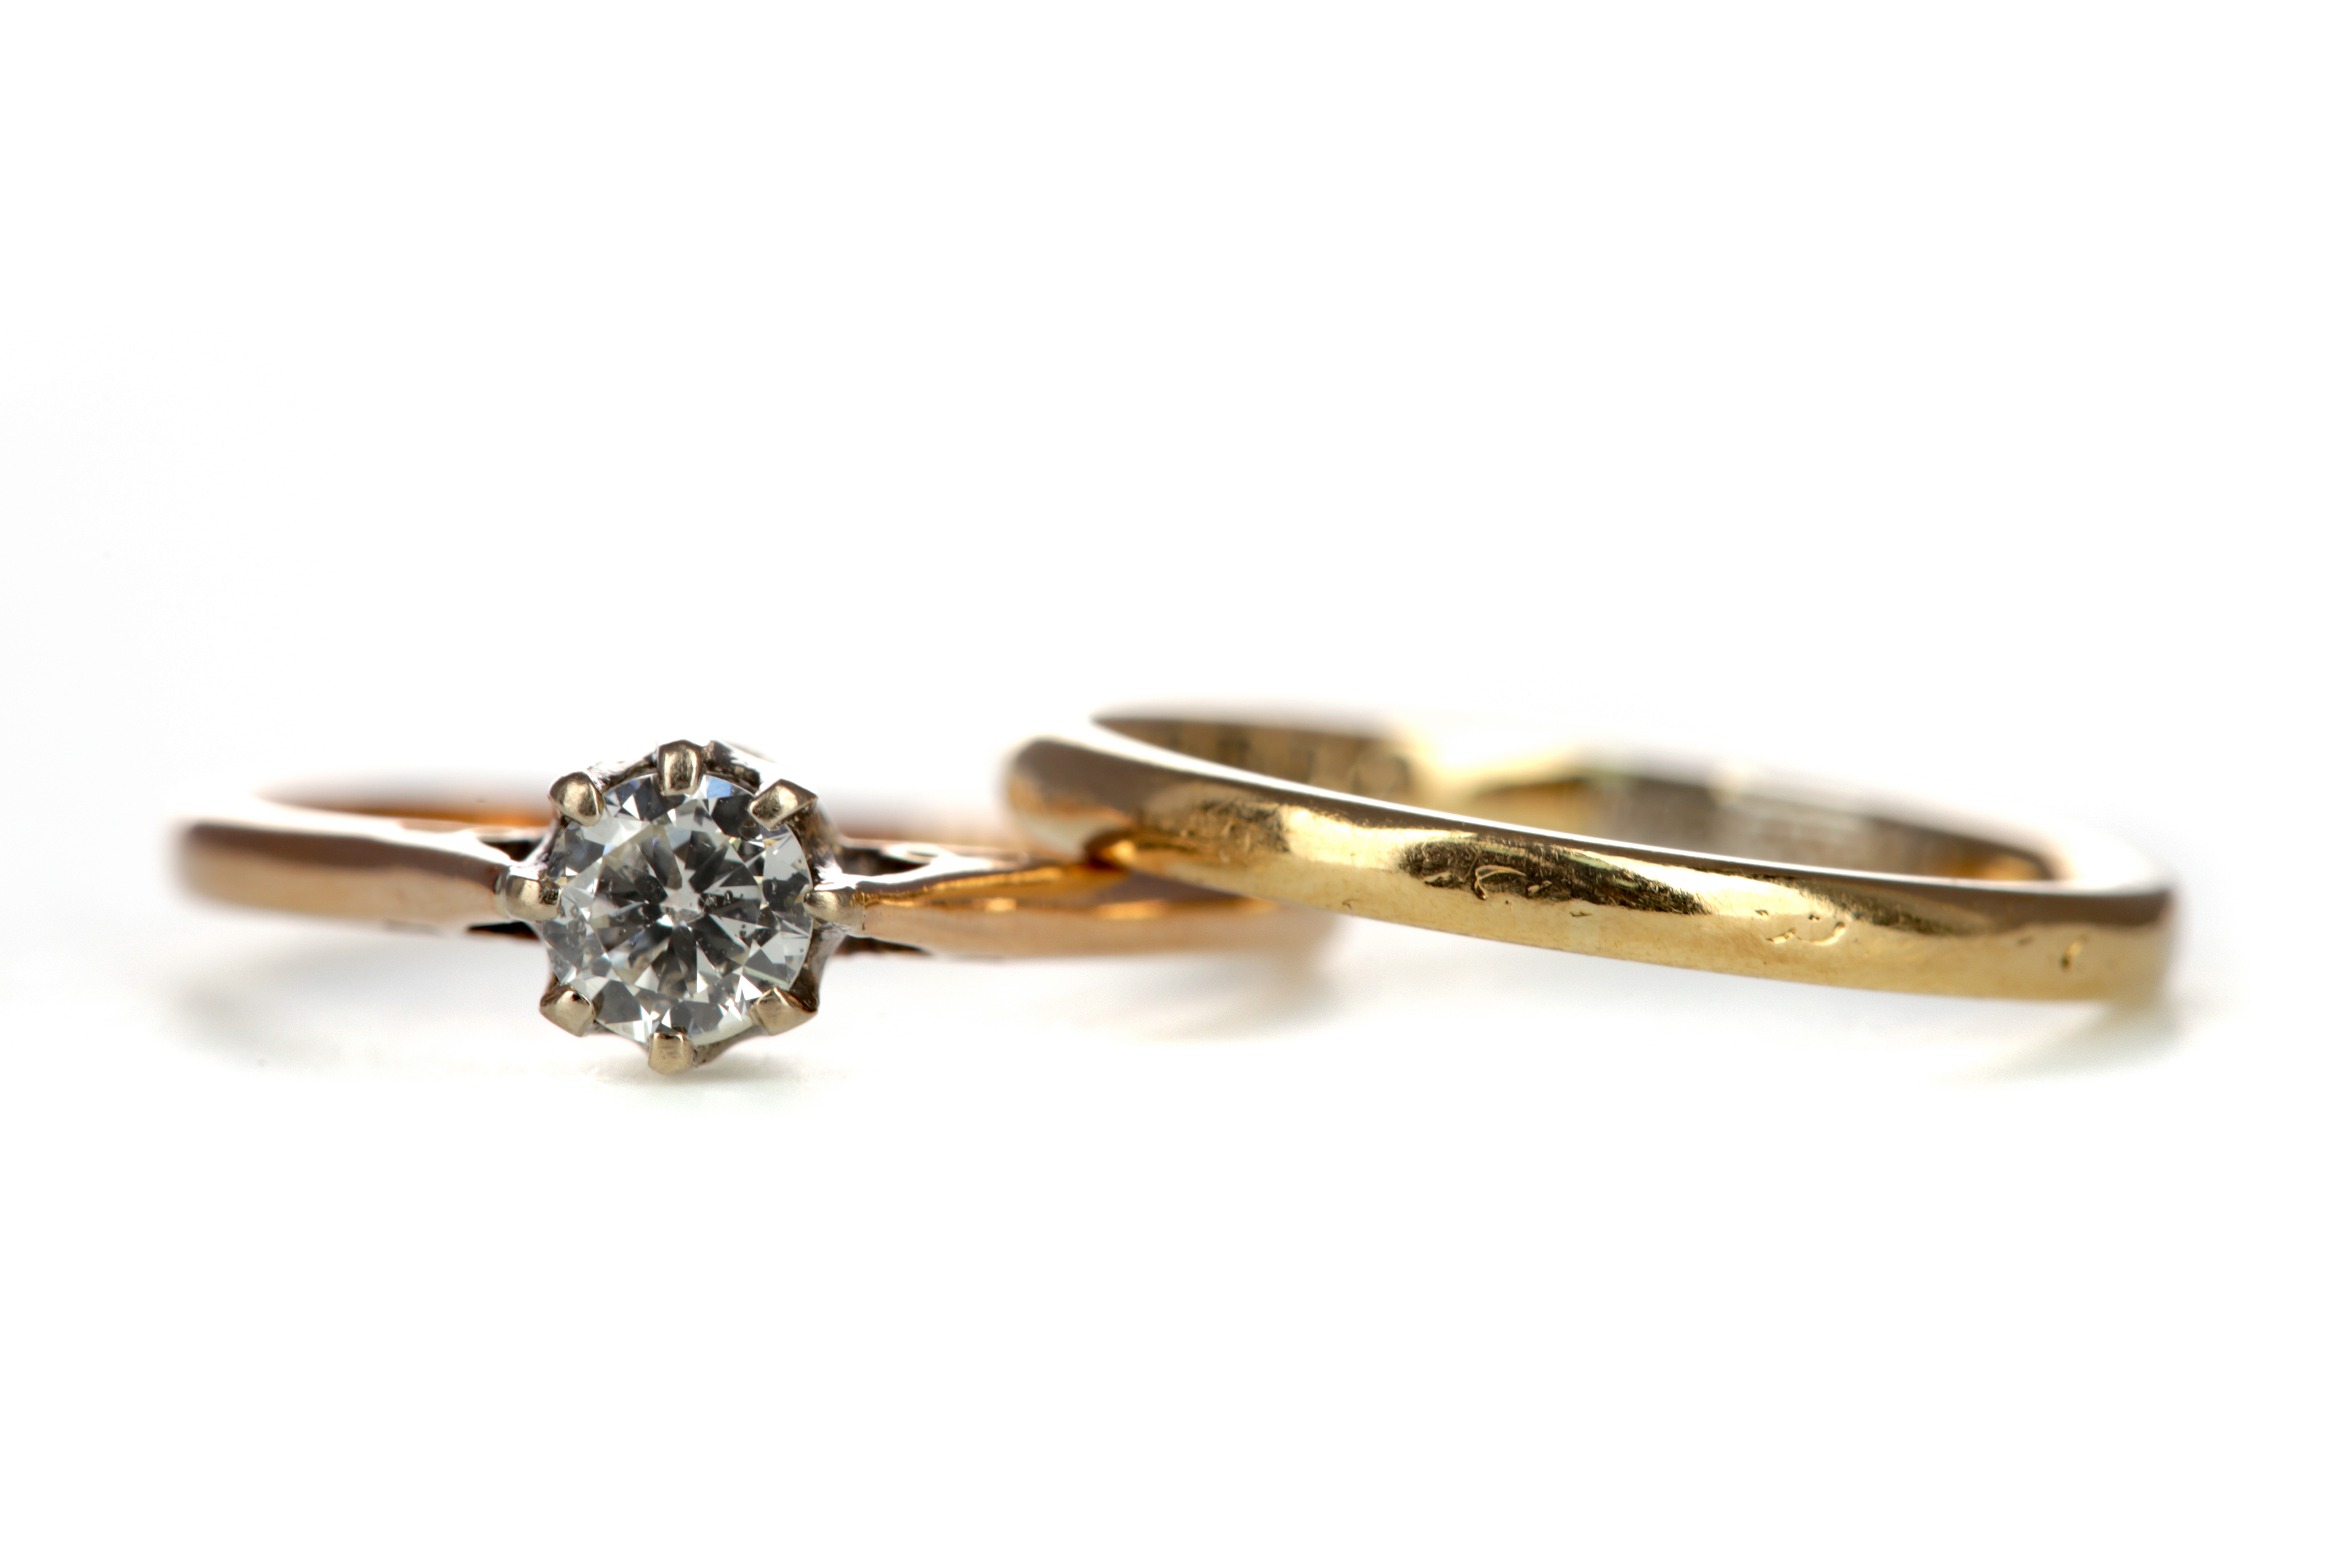 A DIAMOND RING AND A WEDDING BAND